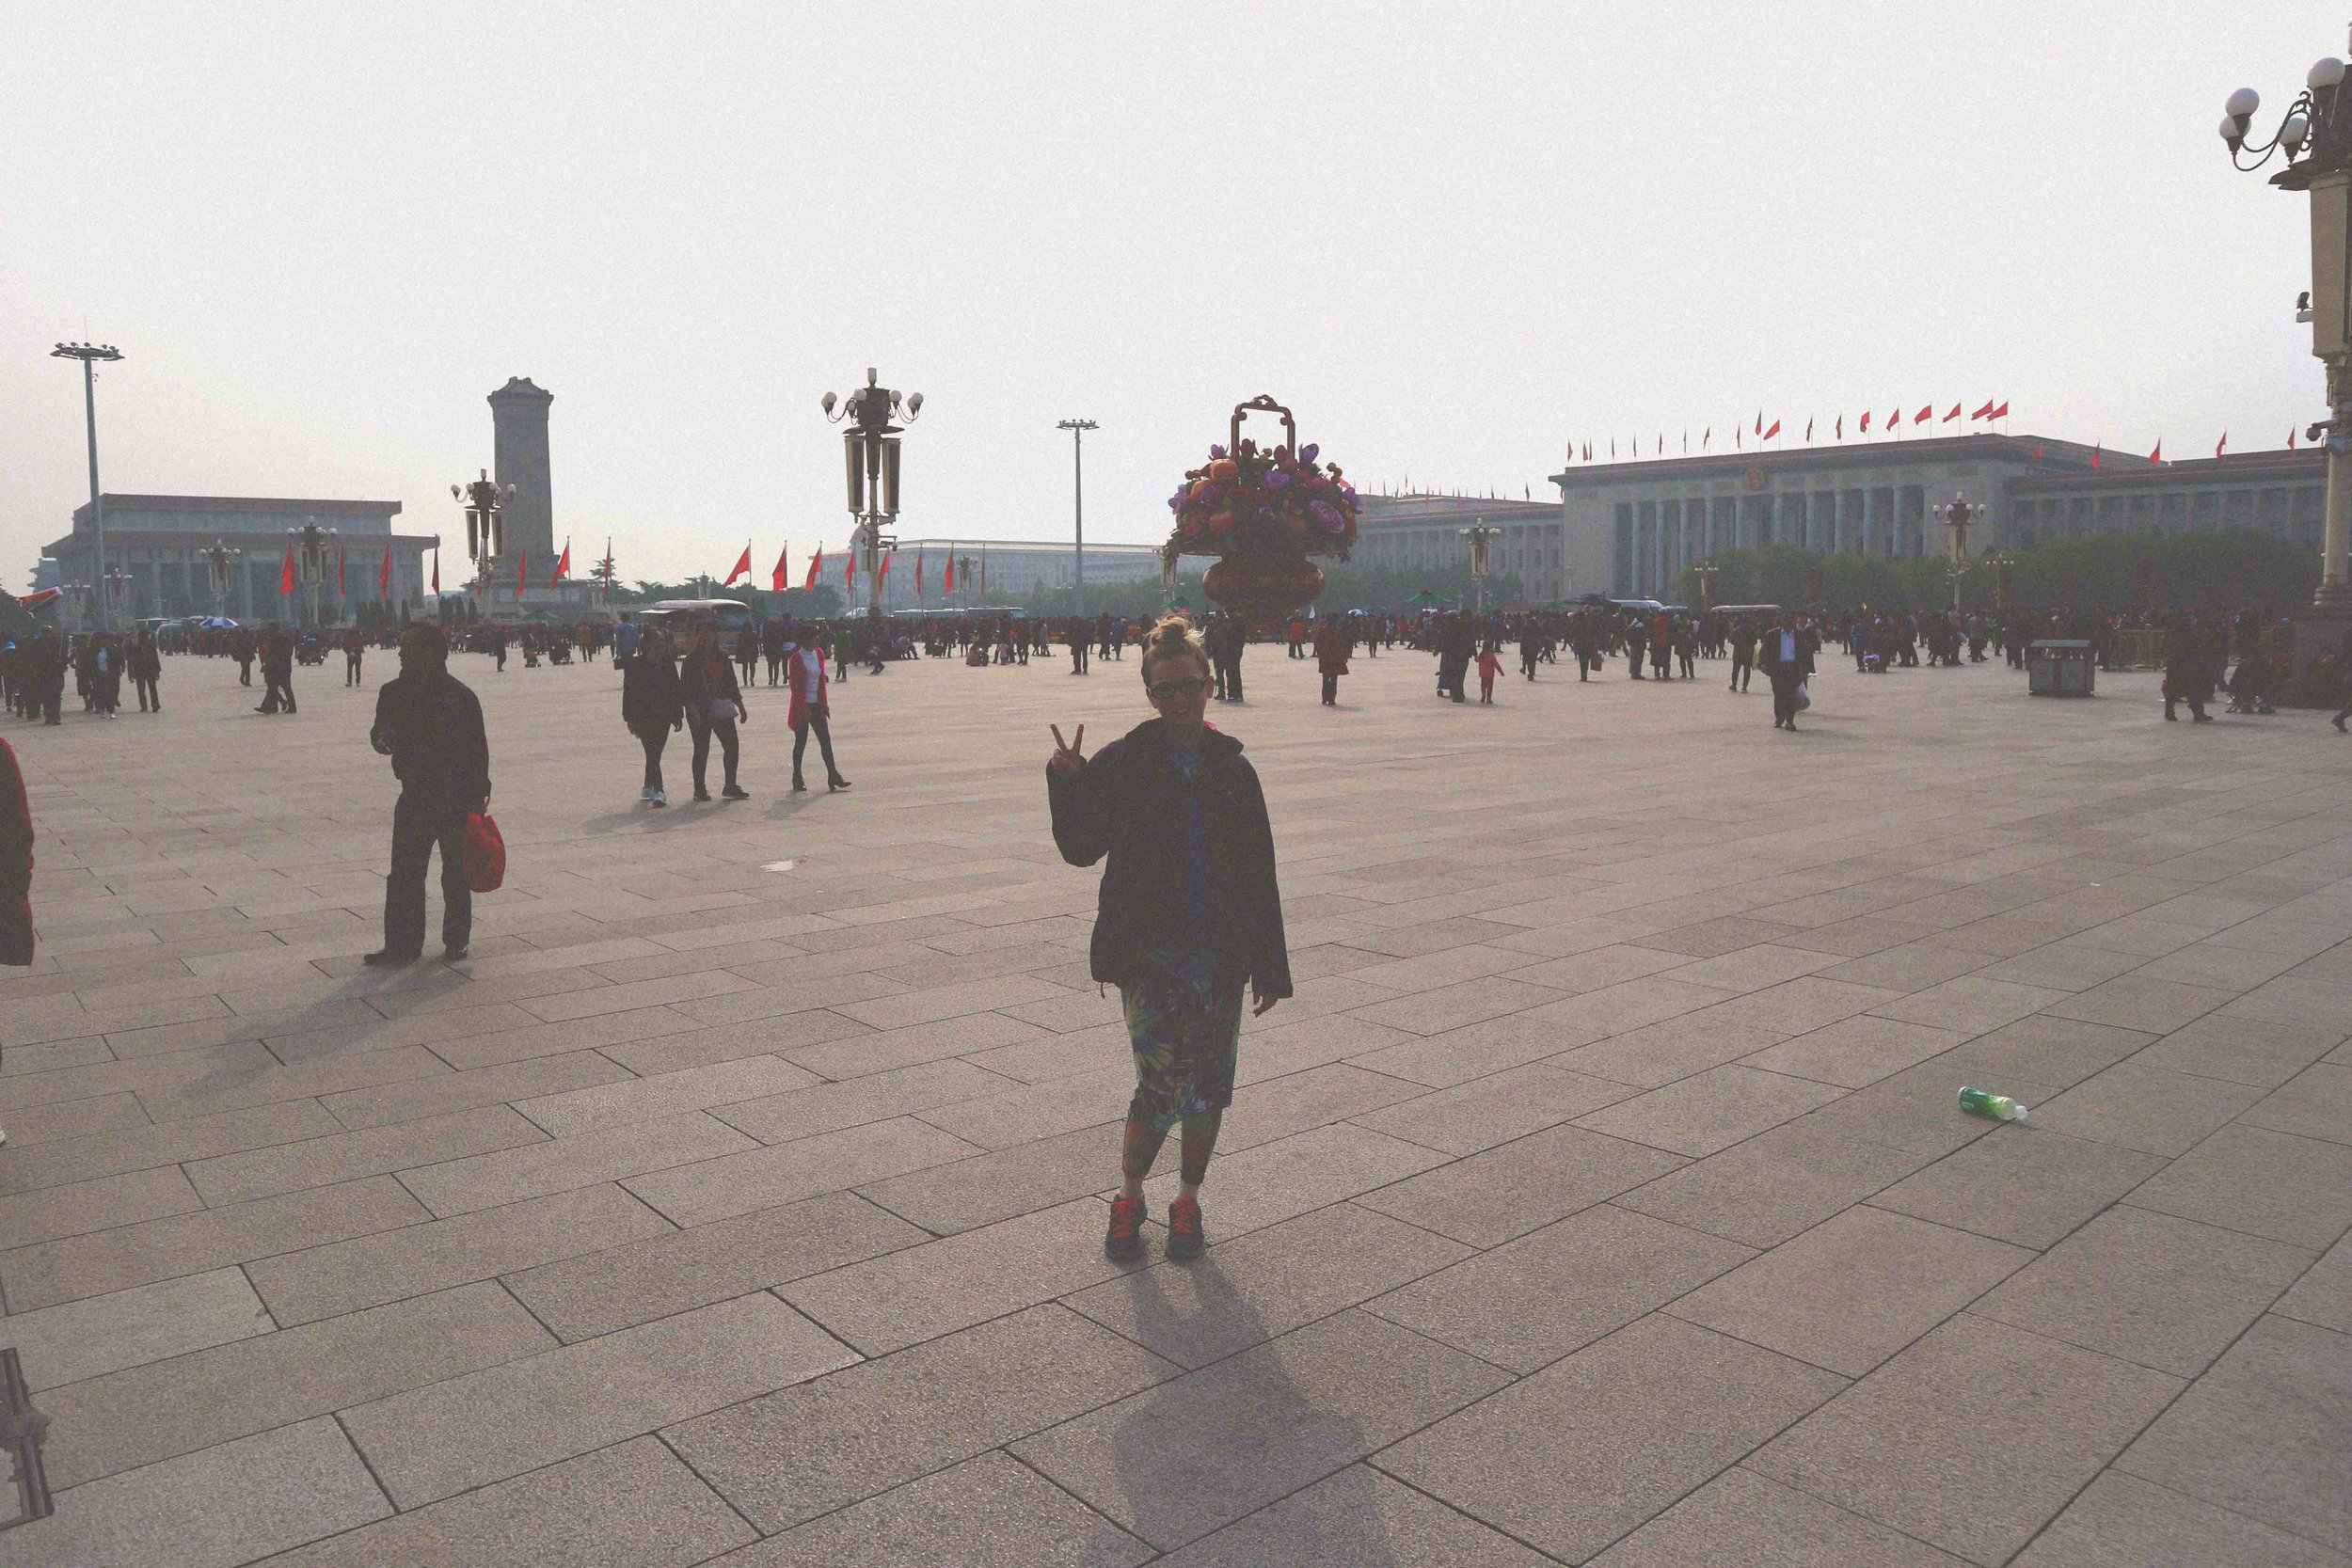 In the huge Tian'anmen Square